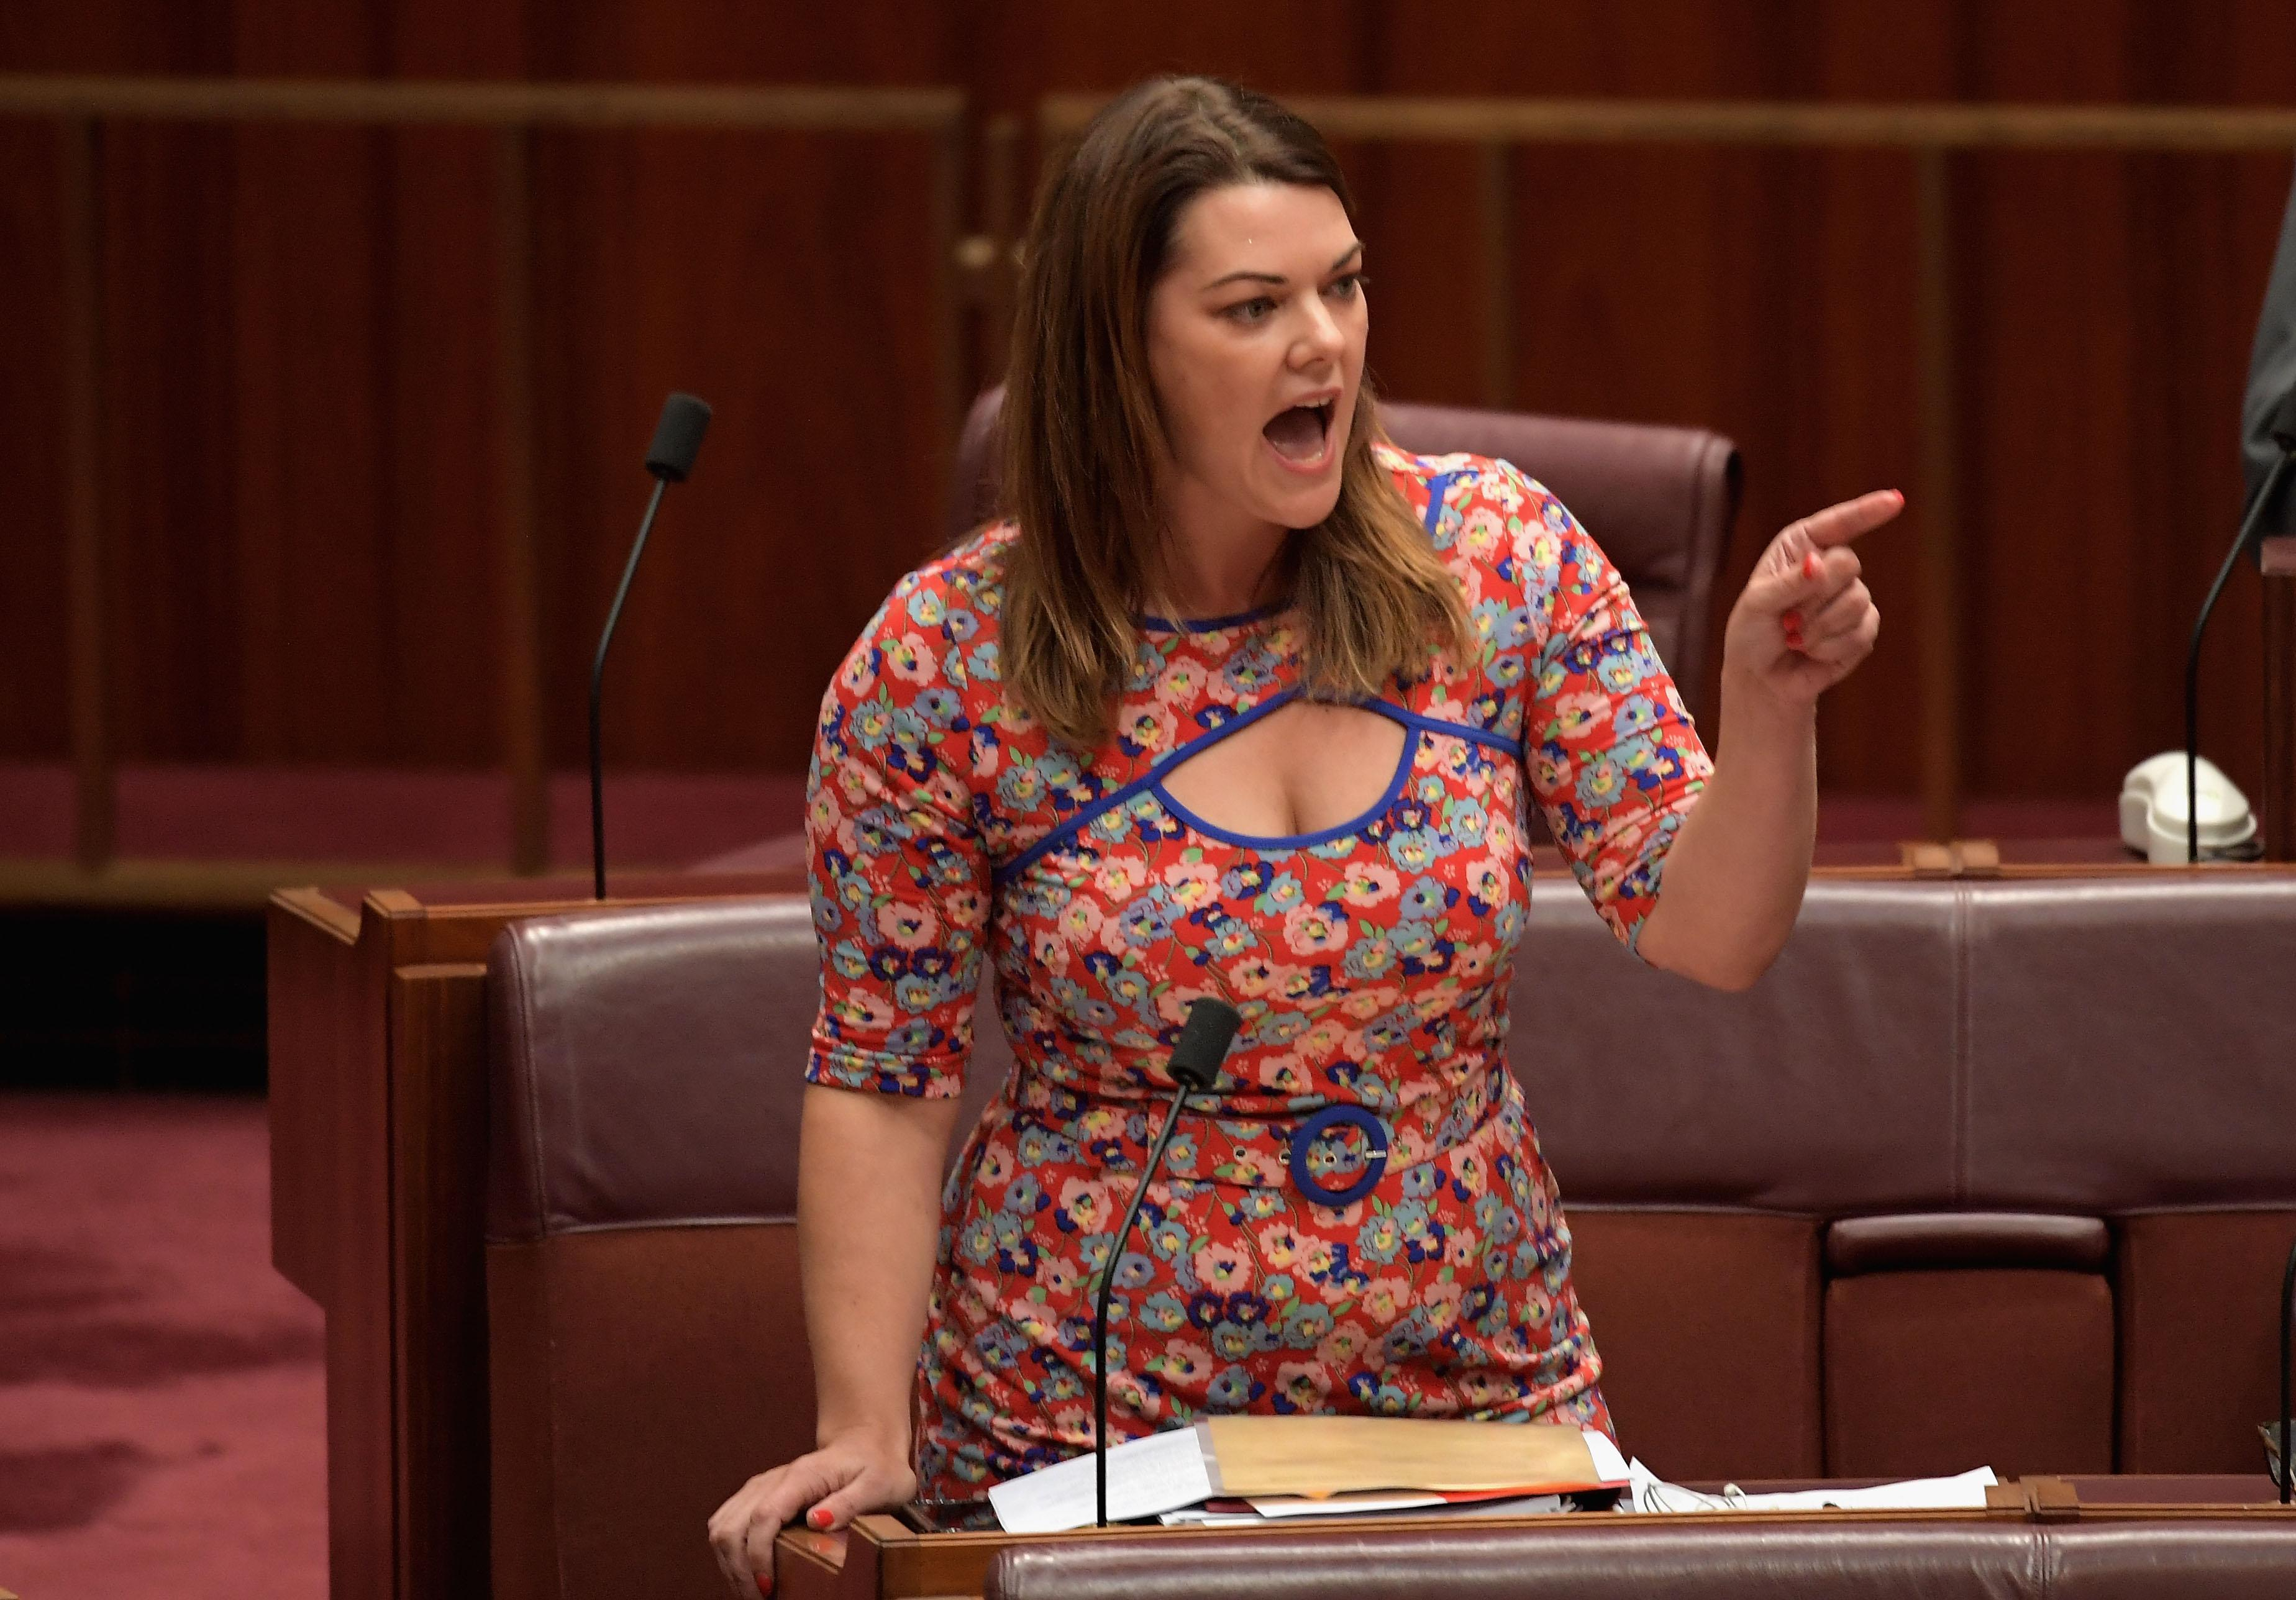 Politician called out her sIut-shaming bullies in powerful speech